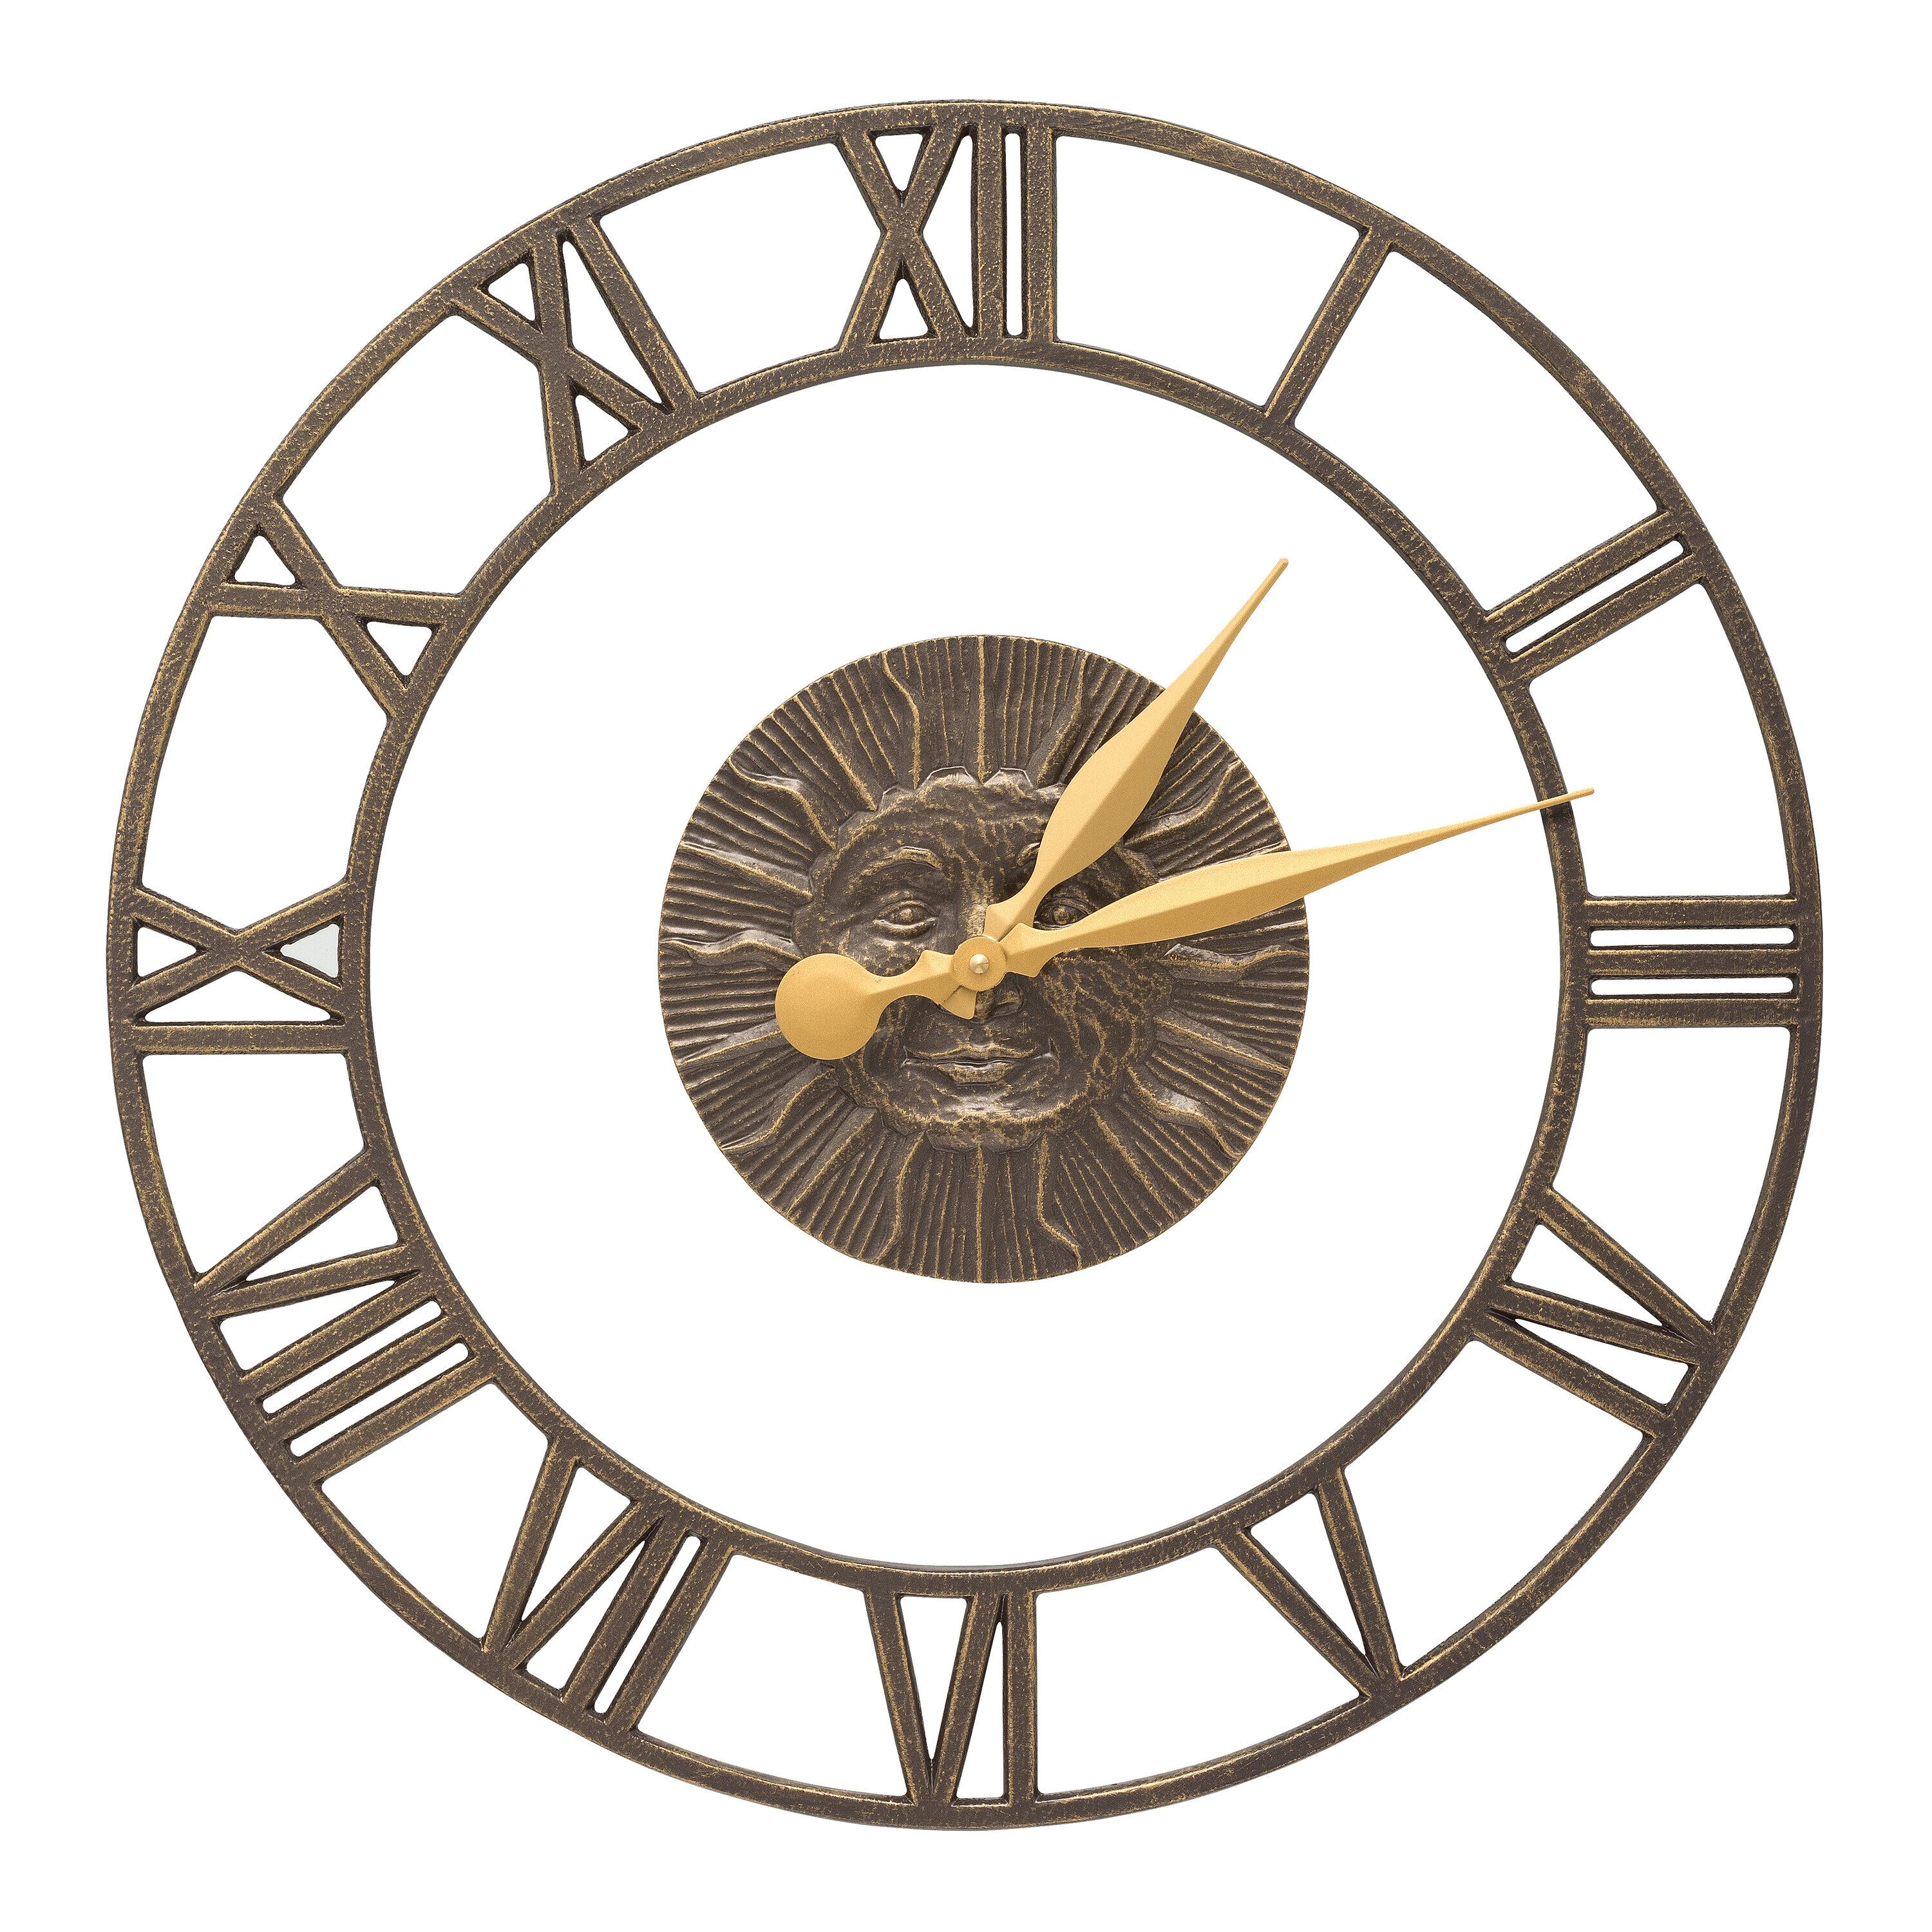 21 Sunface Floating Ring Indoor Outdoor Wall Clock